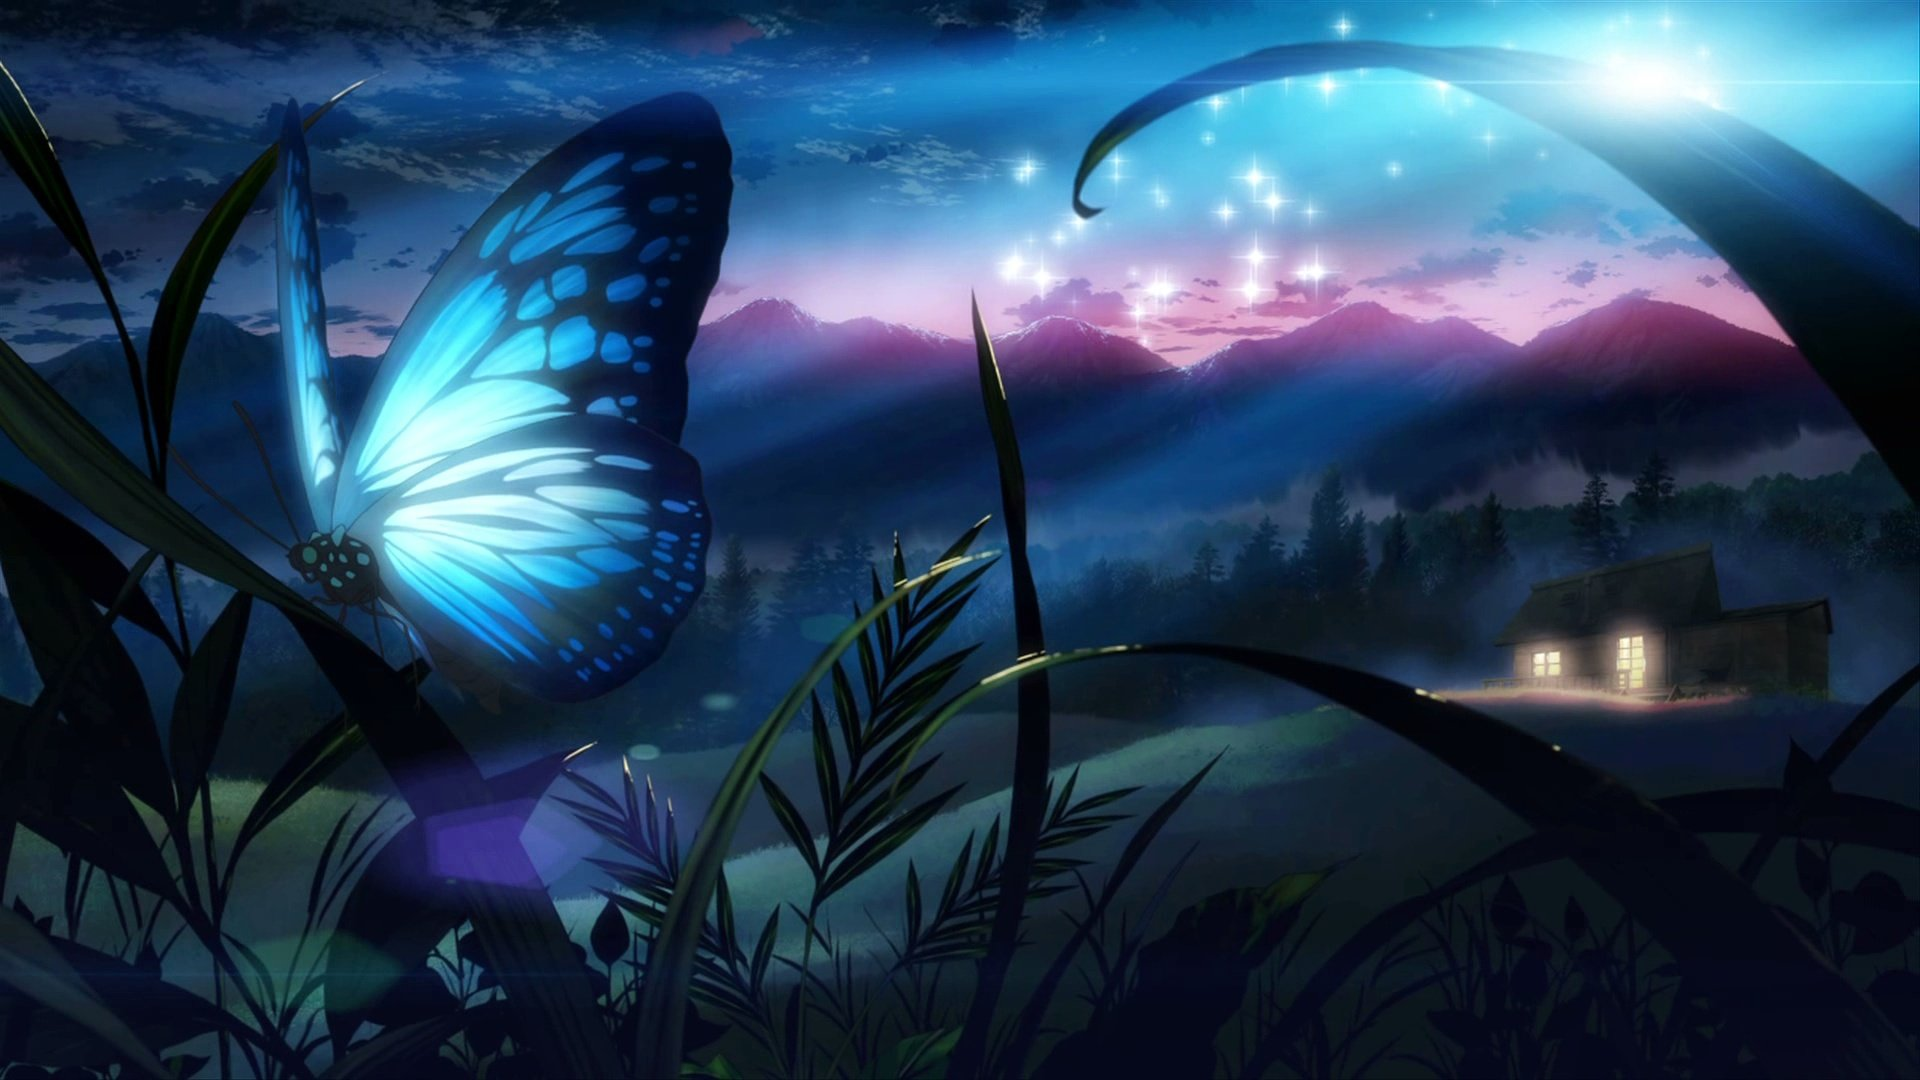 Butterfly eden grass night tree original fantasy wallpaper 1920x1080